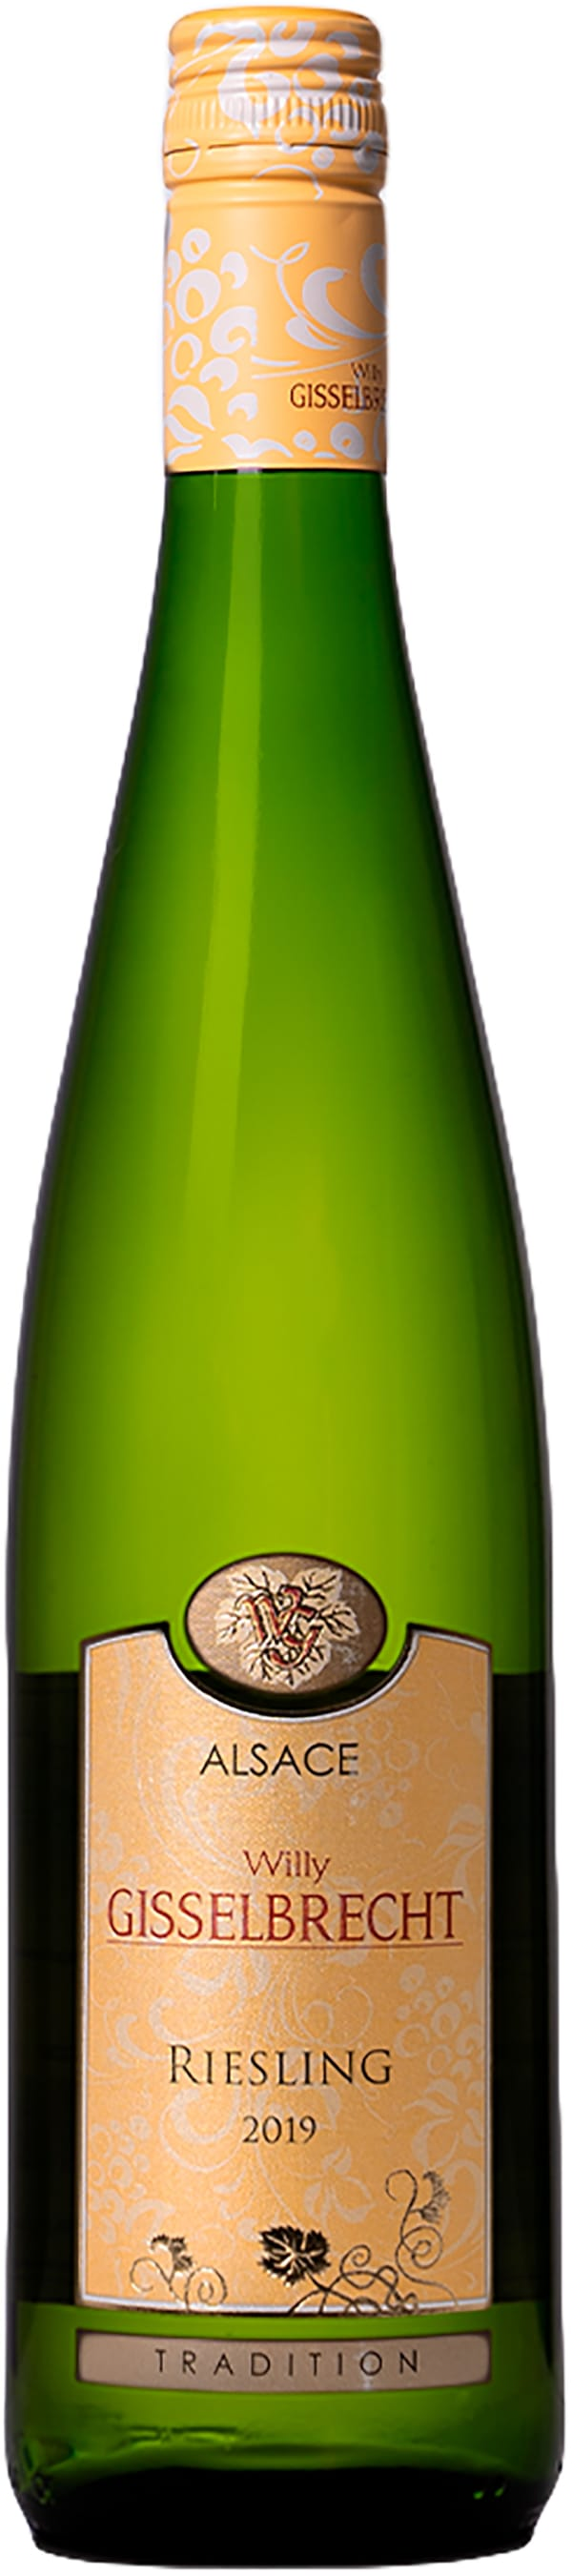 Gisselbrecht Riesling Tradition 2017